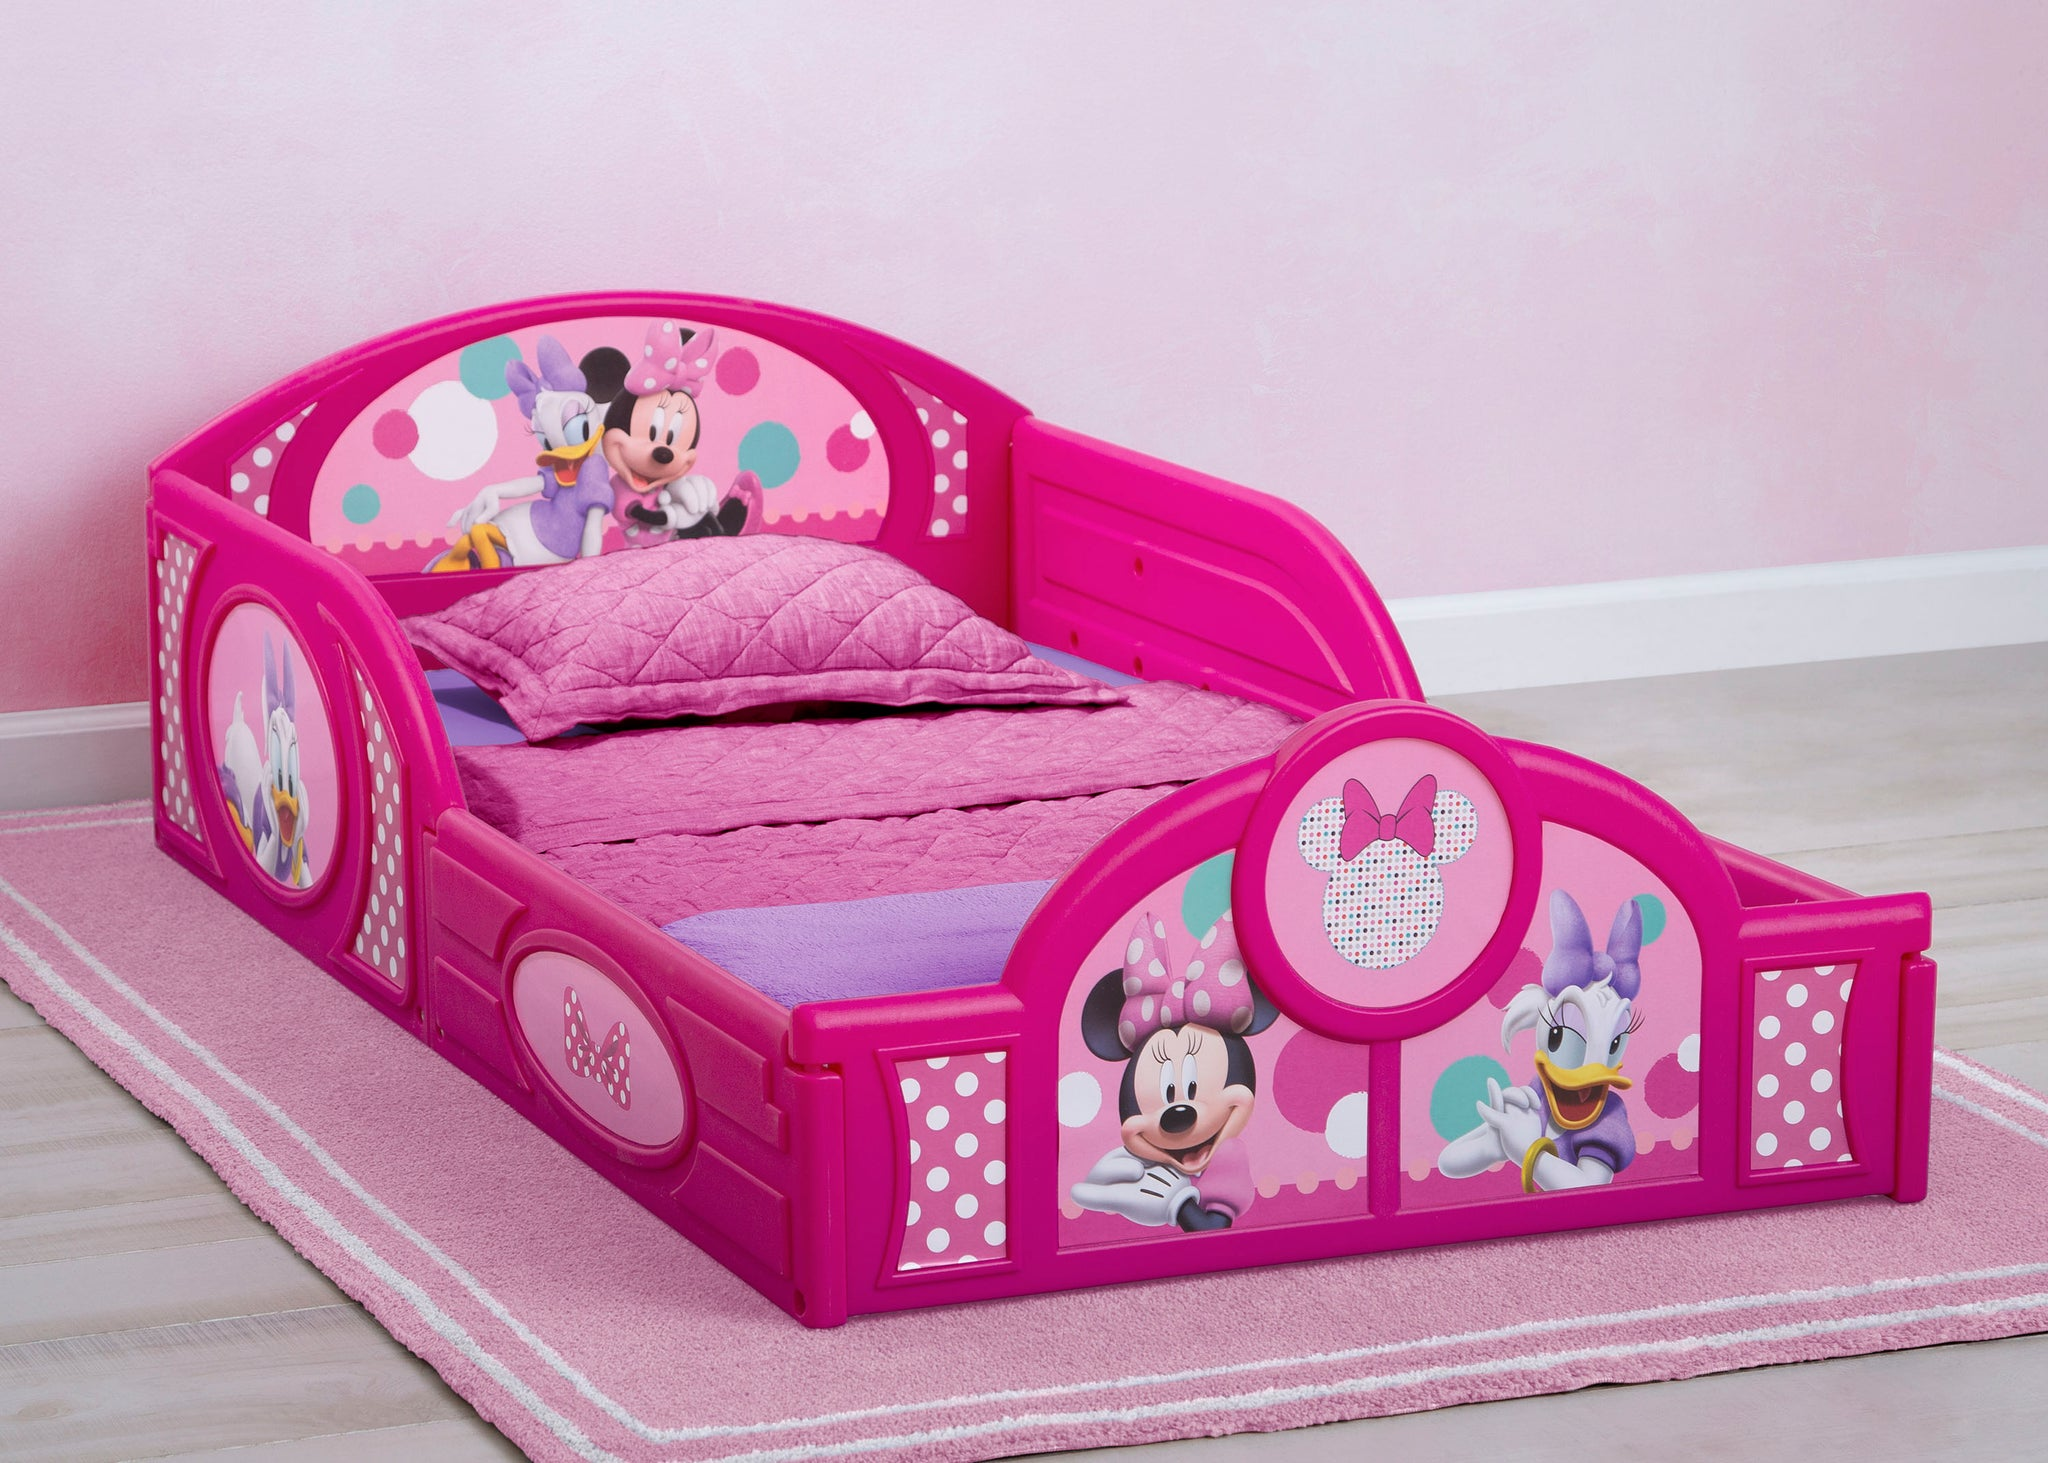 Delta Children Minnie Mouse (1063) Plastic Sleep and Play Toddler Bed, Hangtag View